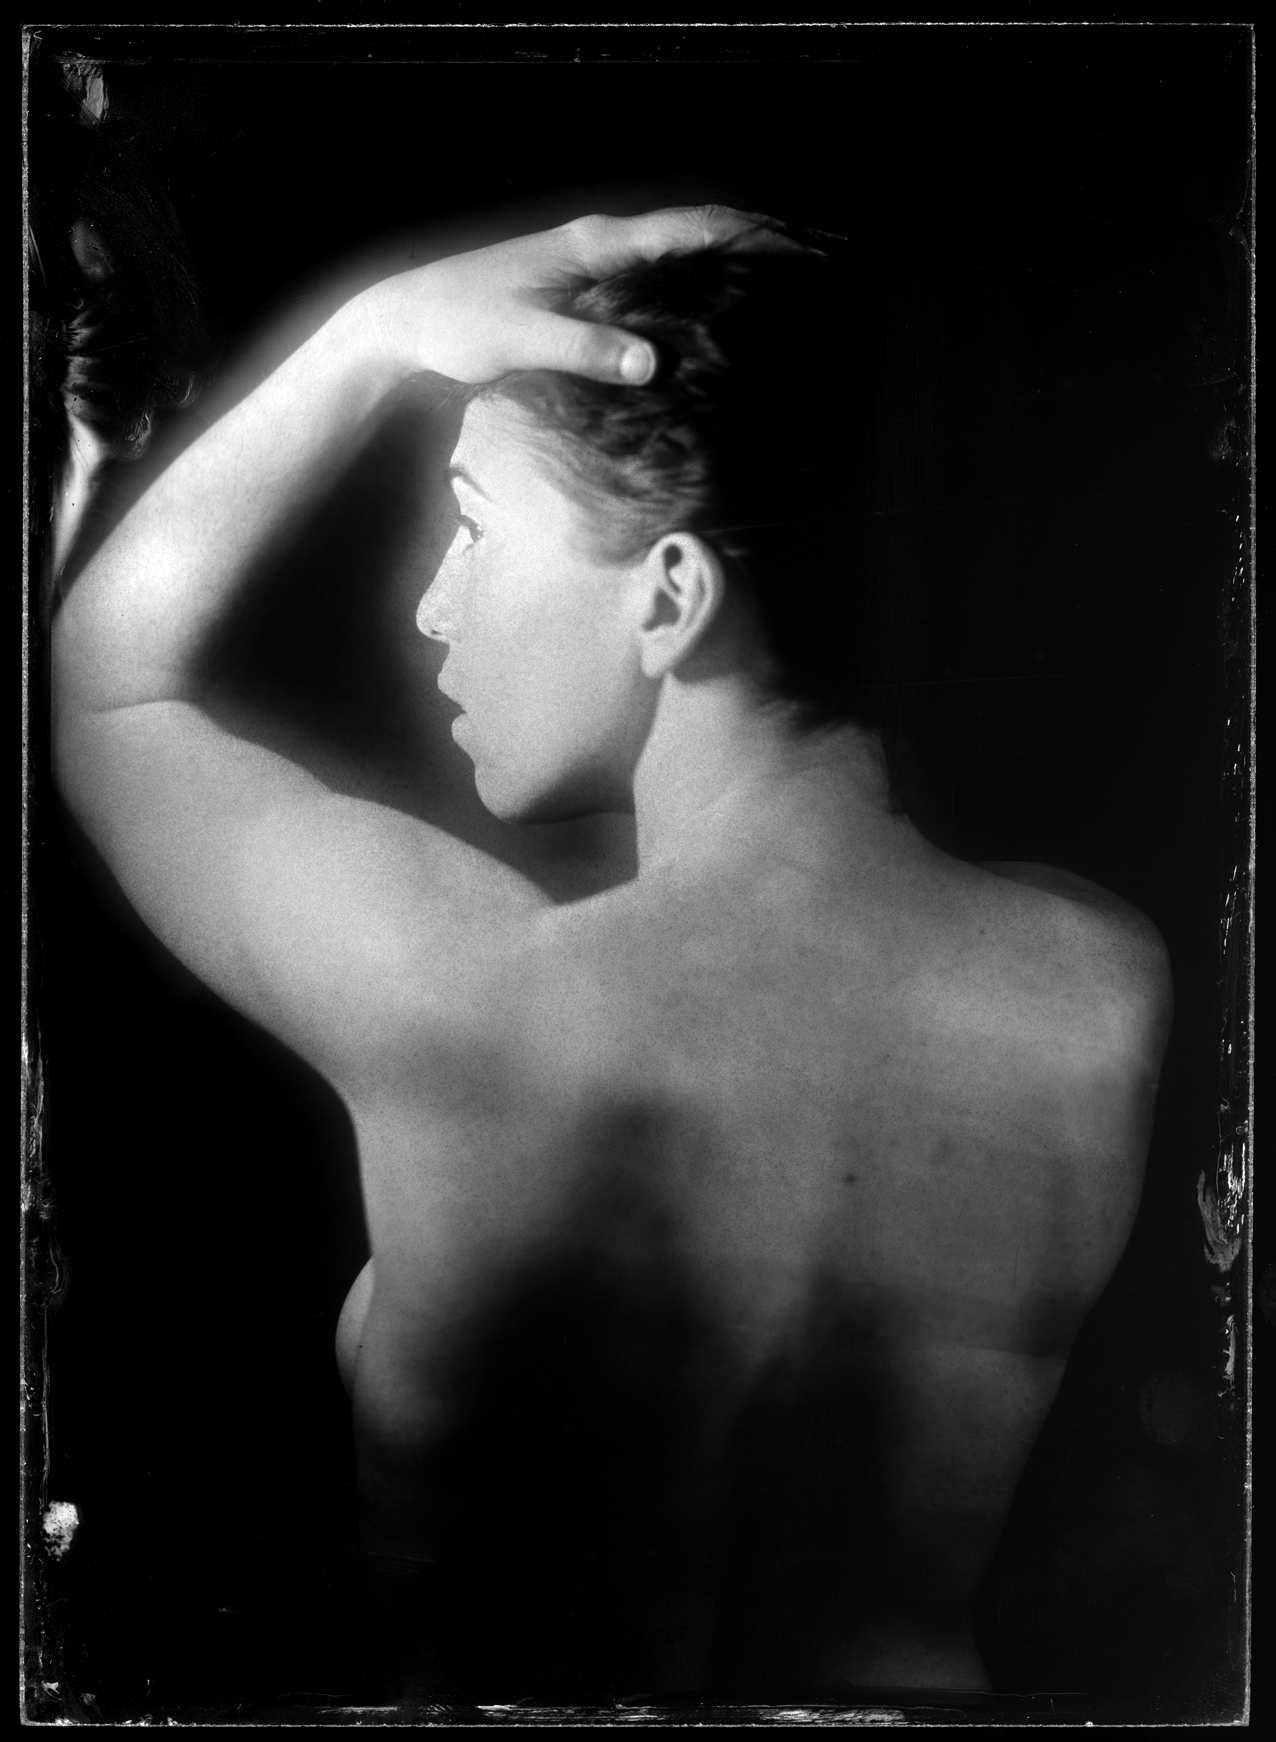 - CelineOriginal Ambrotype 13x18cmin original XIX century photographic frame1100 €Print availableContact us for available sizes and quotation